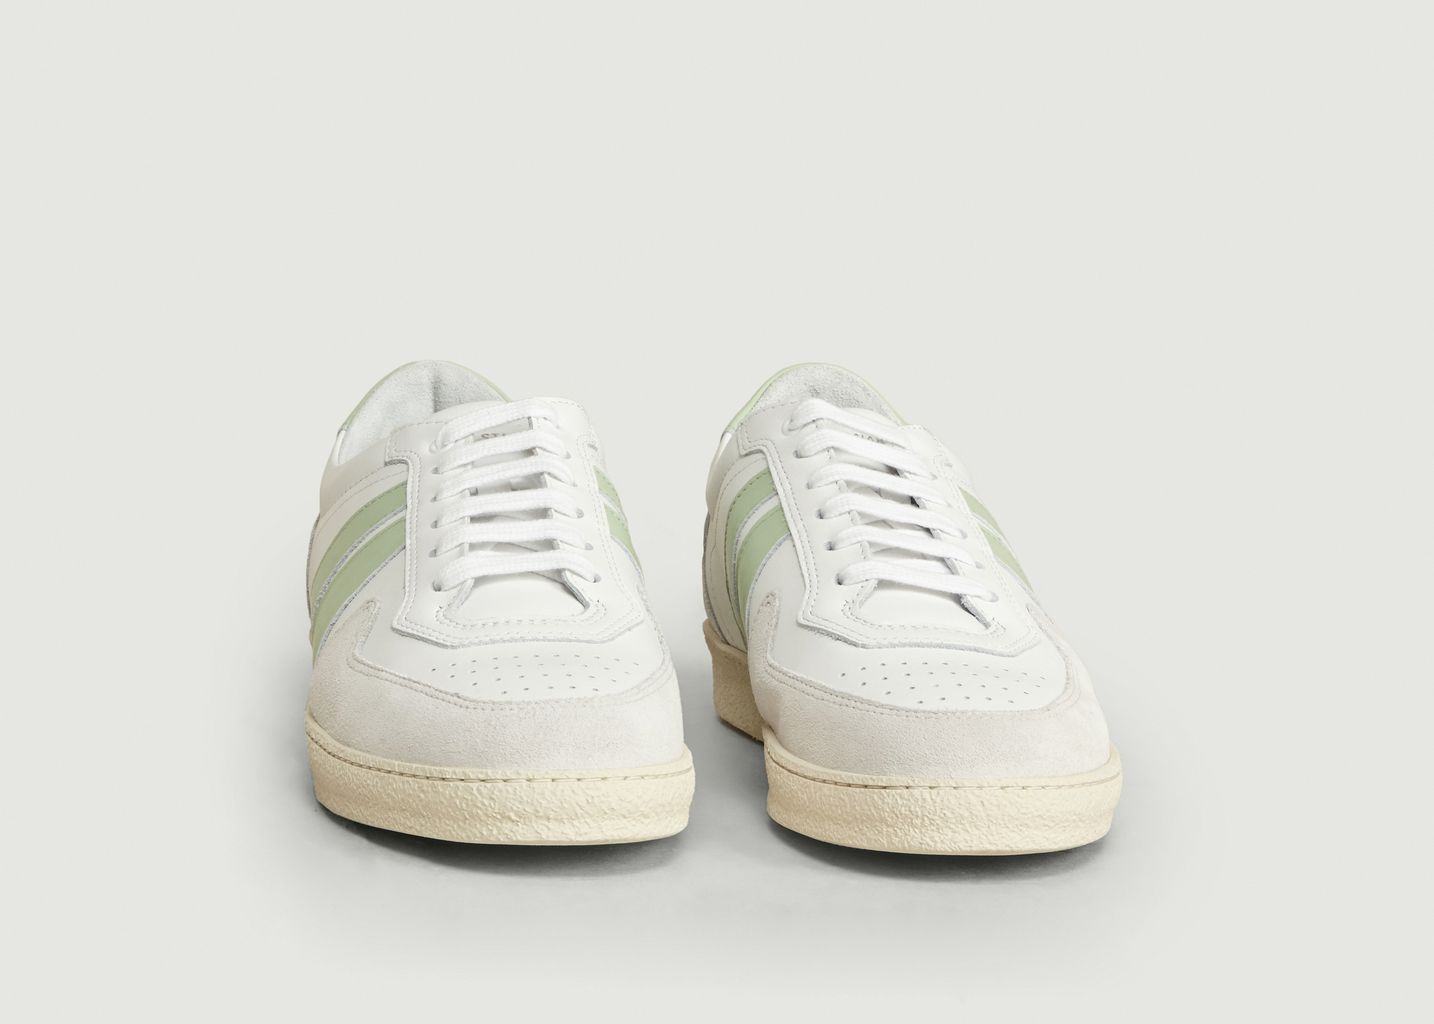 Sneakers Edition 6 - National Standard